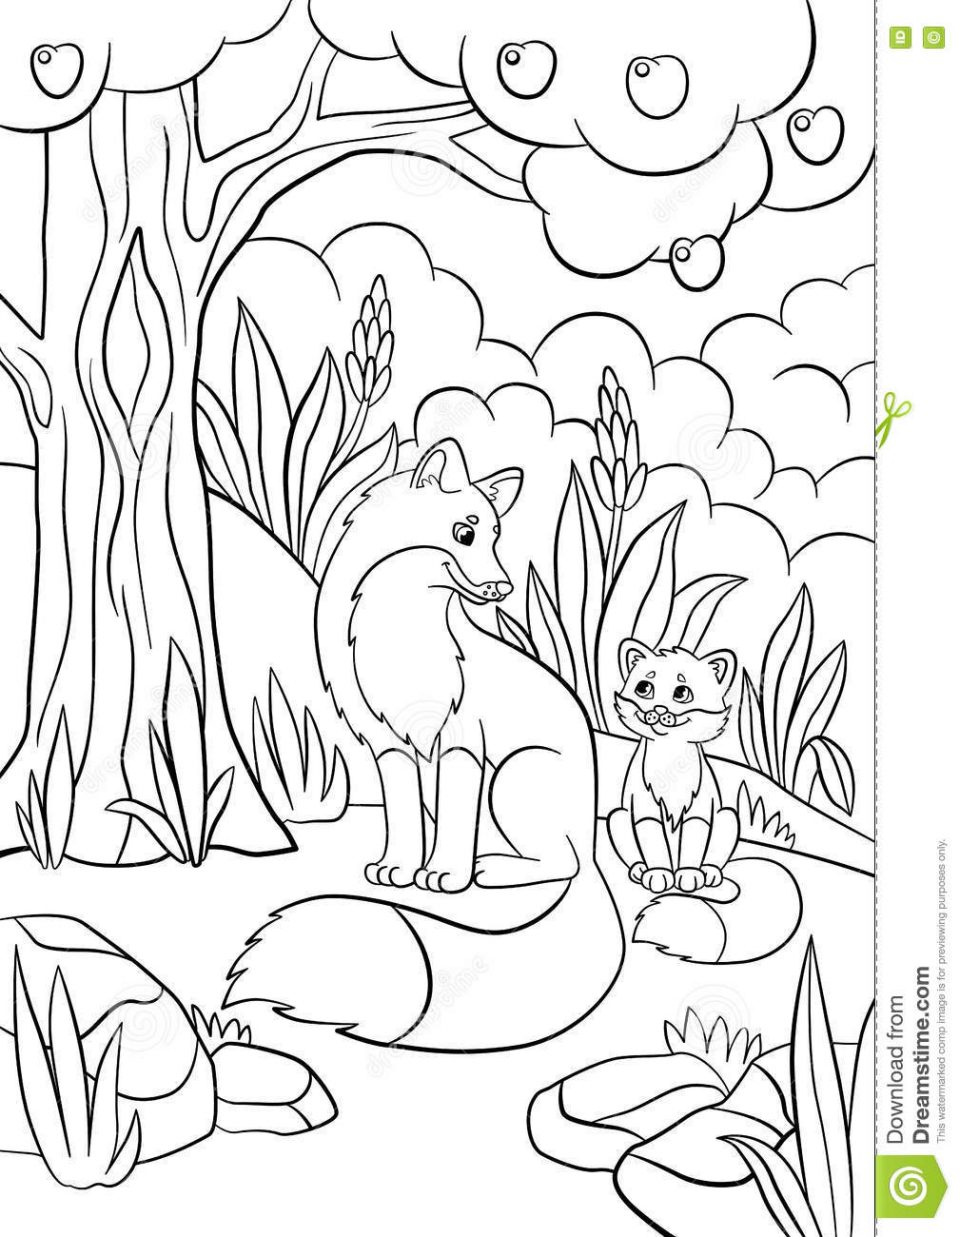 960x1237 Fox Coloring Pages For Preschoolers Printable Adults In Socks Free